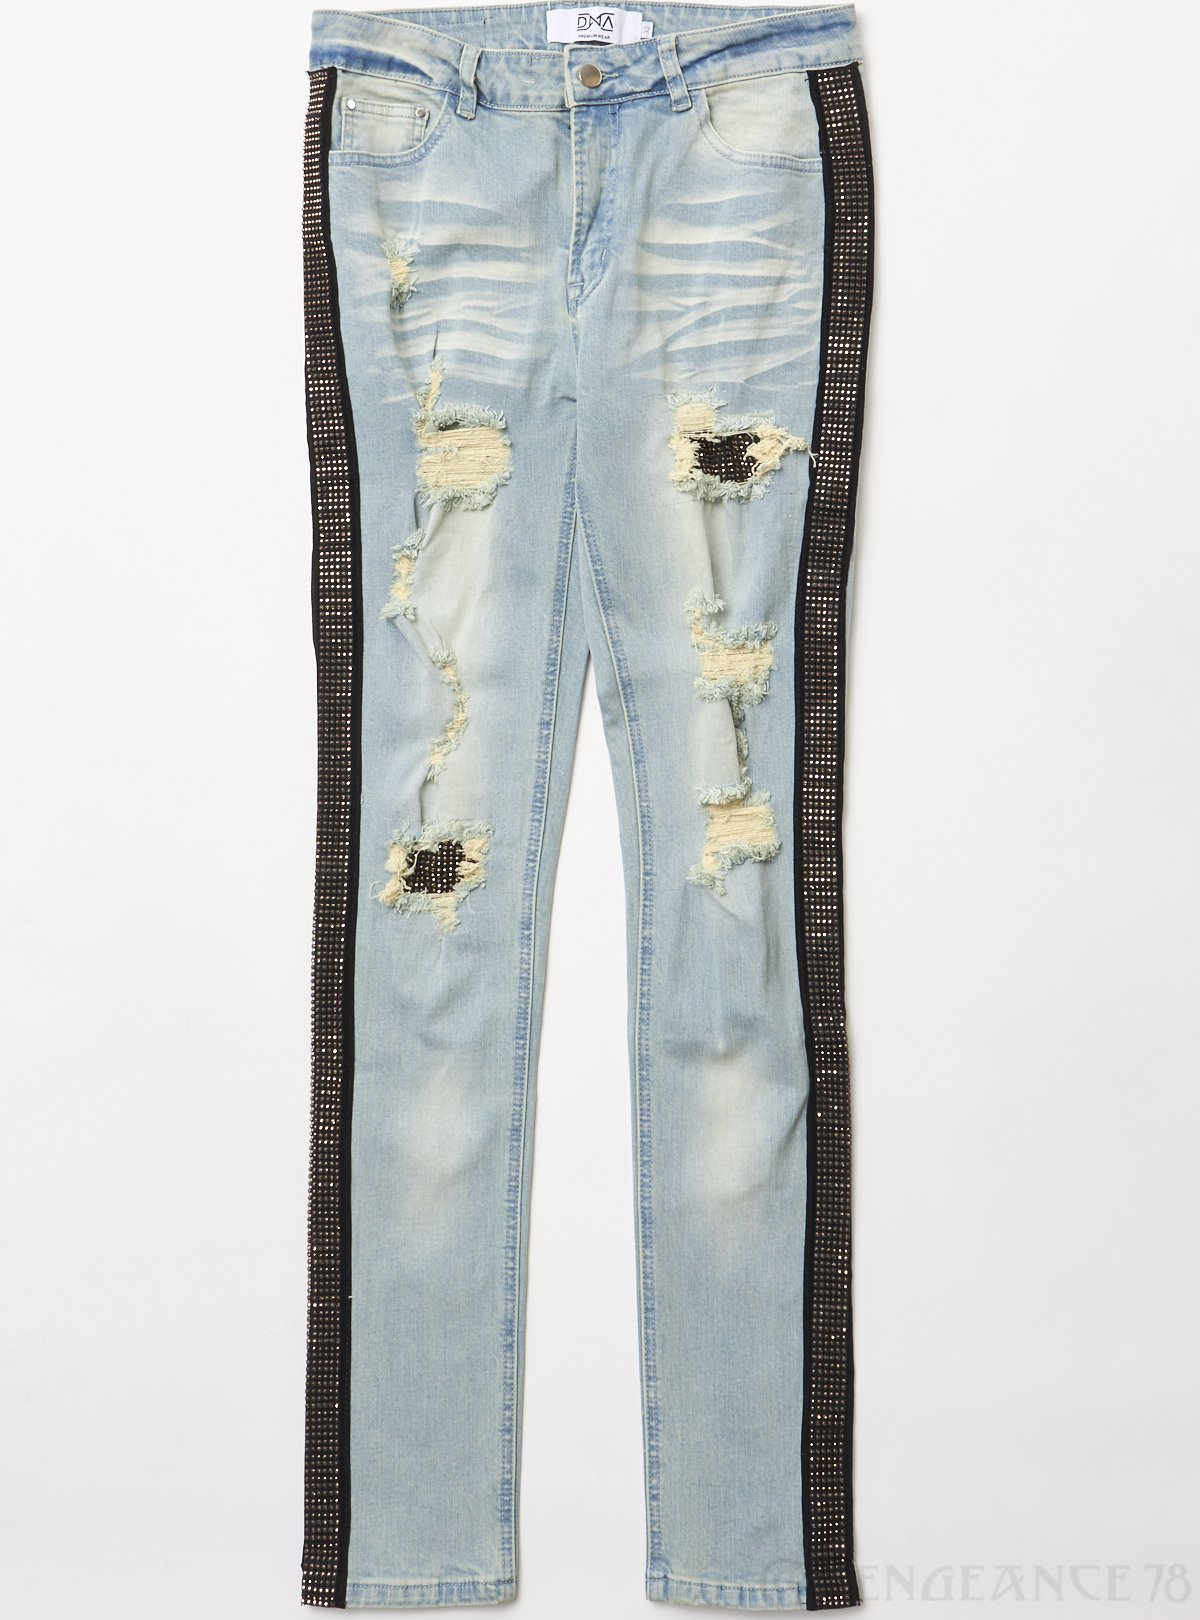 DNA Jeans - Side Stones - Light Blue And Gold